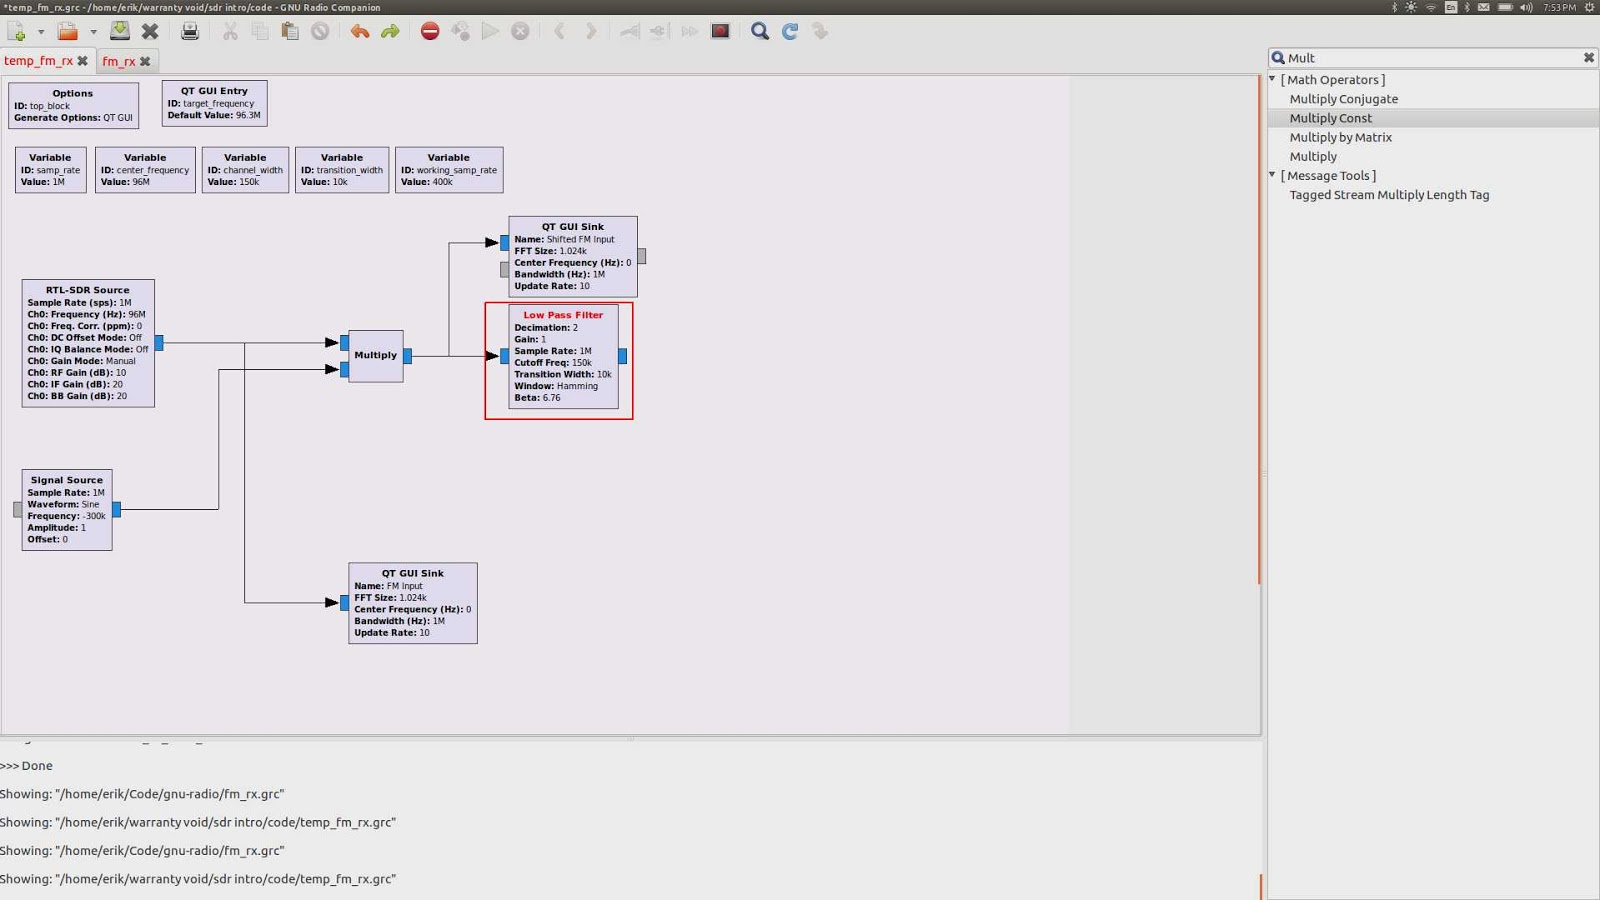 WarrantyV01D: Building a Software FM Receiver with an RTL-SDR and